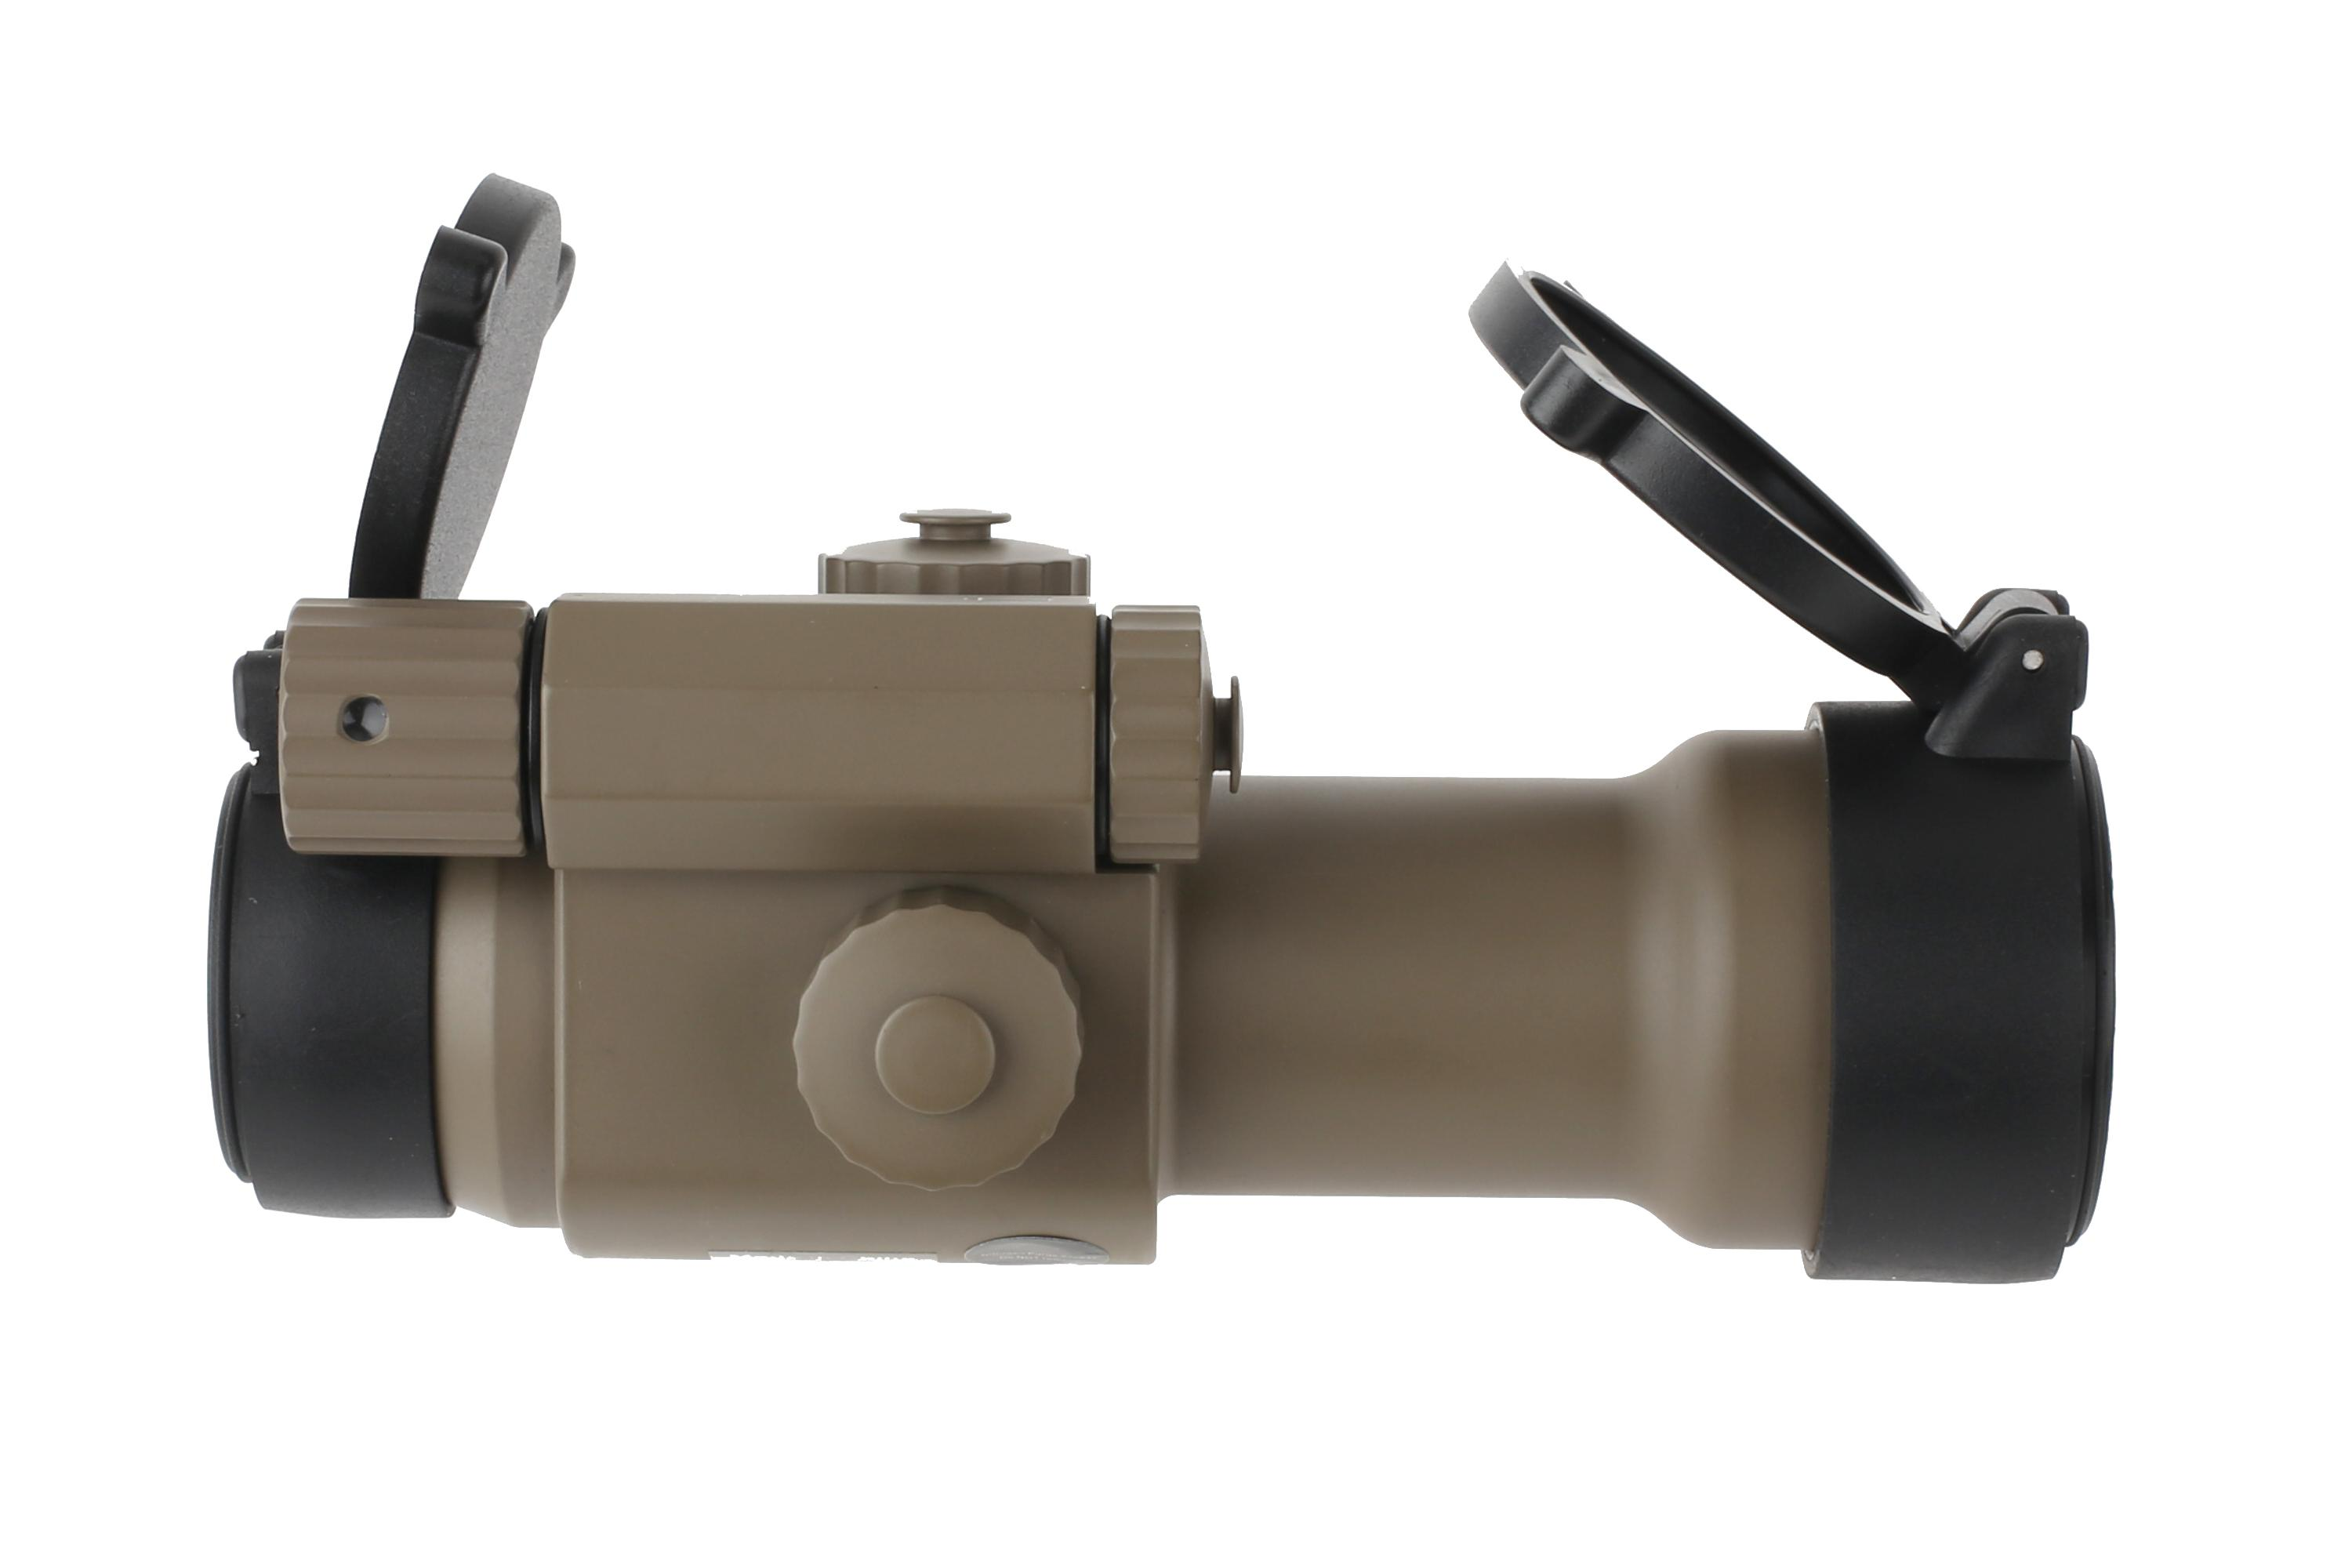 This red dot sight from primary arms comes with scope lens covers